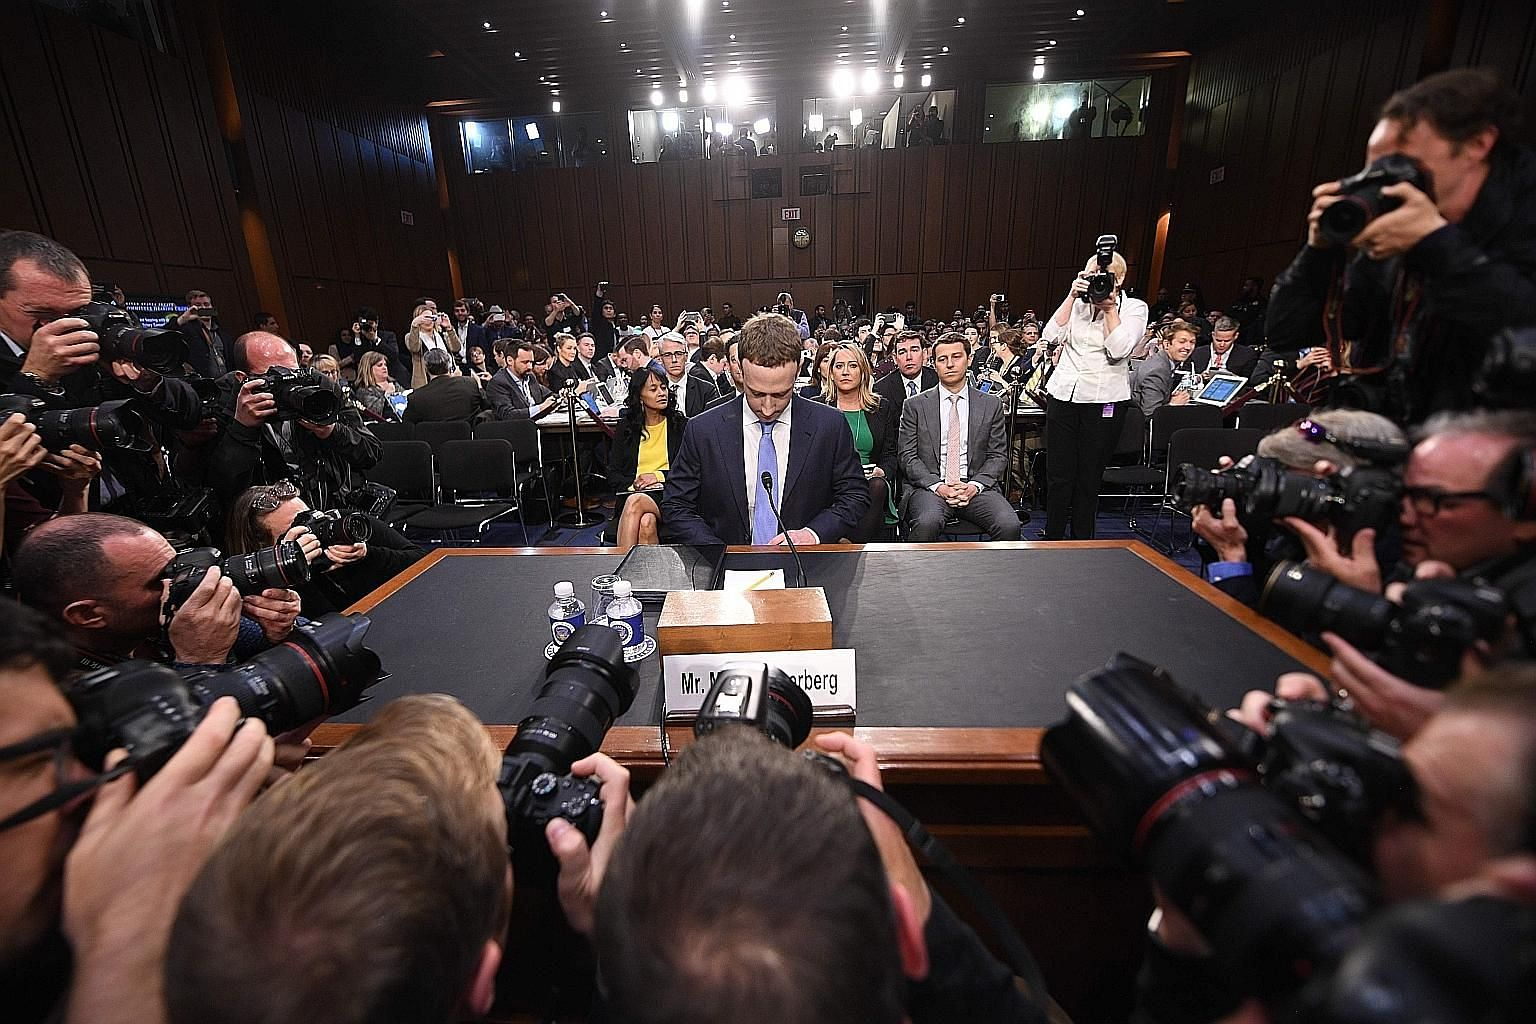 Facebook chief executive Mark Zuckerberg testifying before lawmakers in Washington last April, over his company's data breach scandal. It recently emerged that he had mulled over selling user data in 2012 and 2014, notwithstanding his promise in 2009